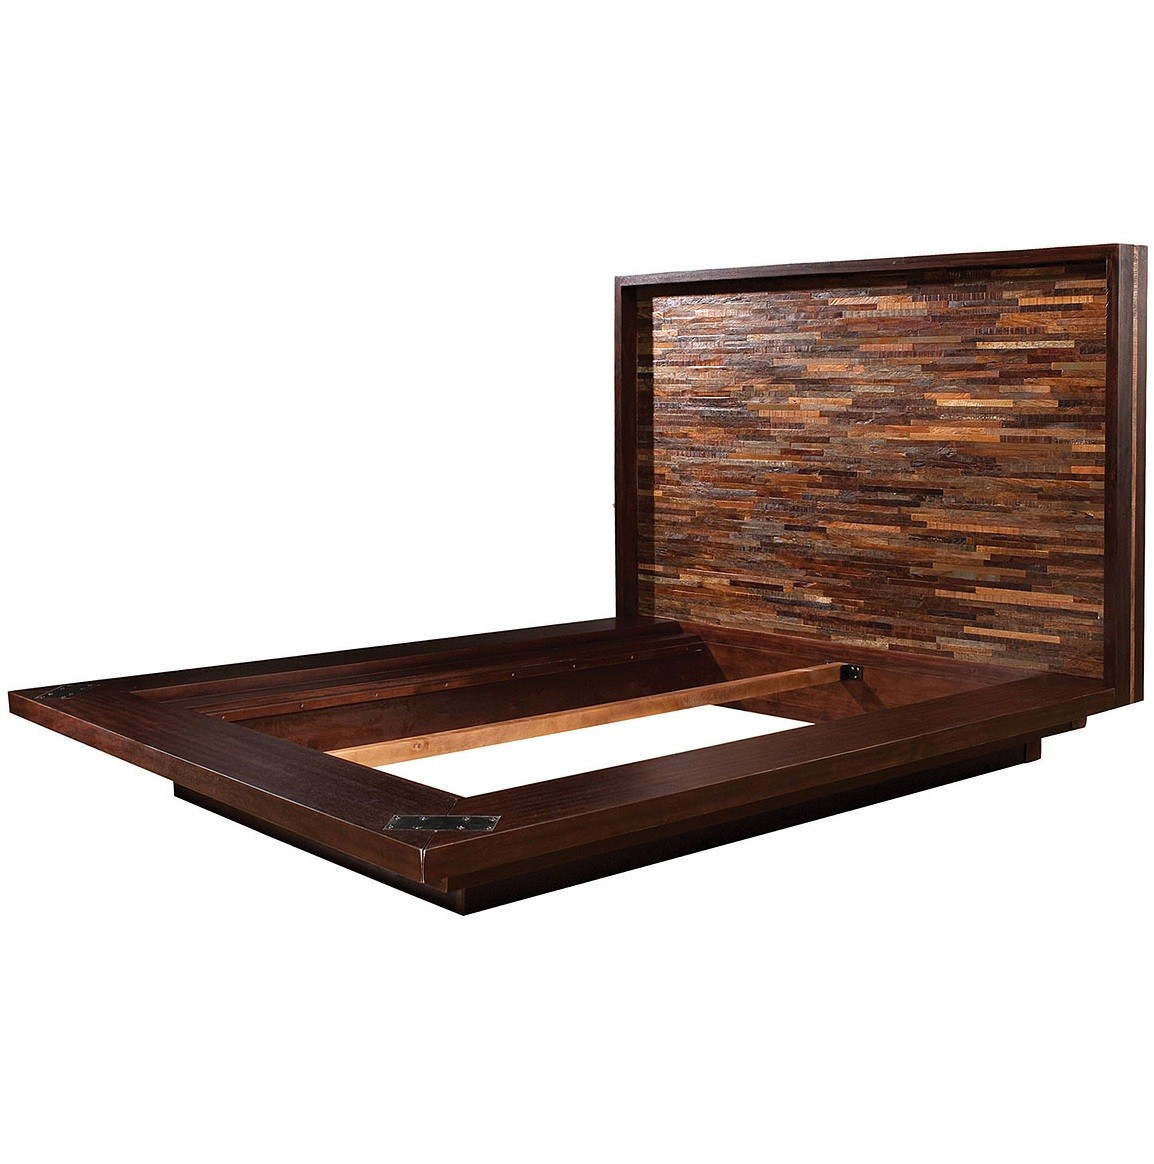 devon reclaimed wood queen platform bed frame zin home - Solid Wood Platform Bed